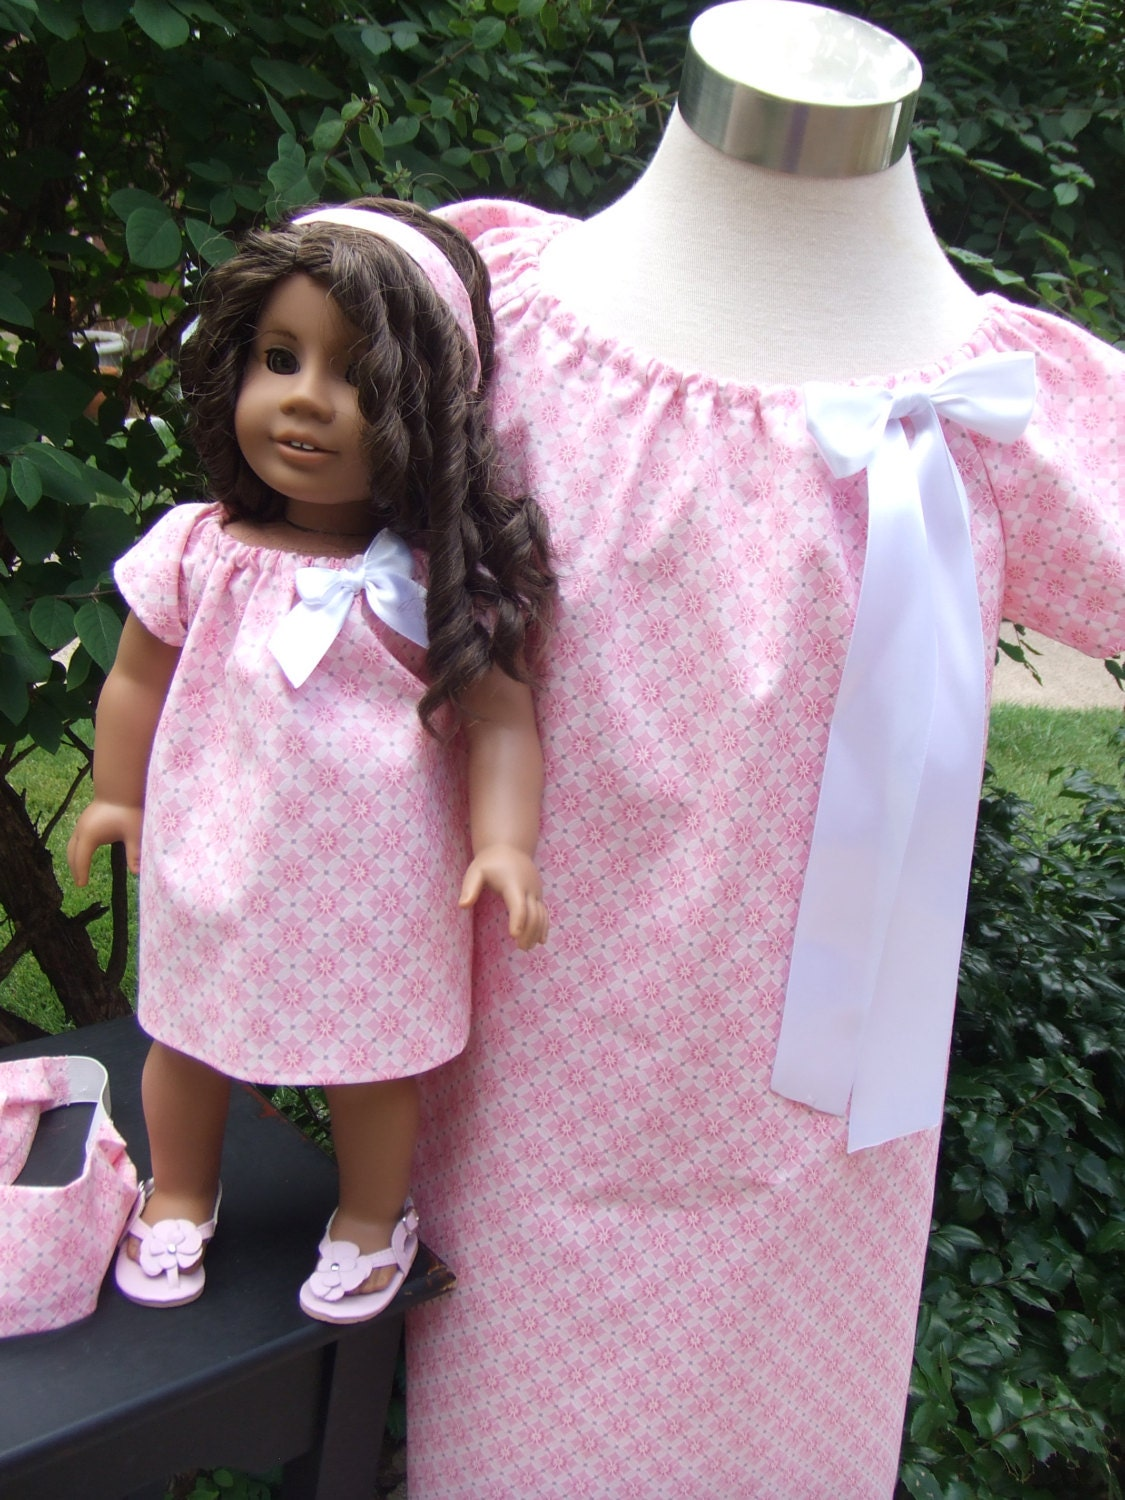 Free patterns for American Girl and other 18″ dolls. Katie Dress Carpatina Dress. Old Fashioned dress Spring dress Dollar store doll clothes—pants, shorts, leggings, bike shorts, halter top, camisole, socks. Doll Panties Free patterns for American Girl and other 18″ dolls;.